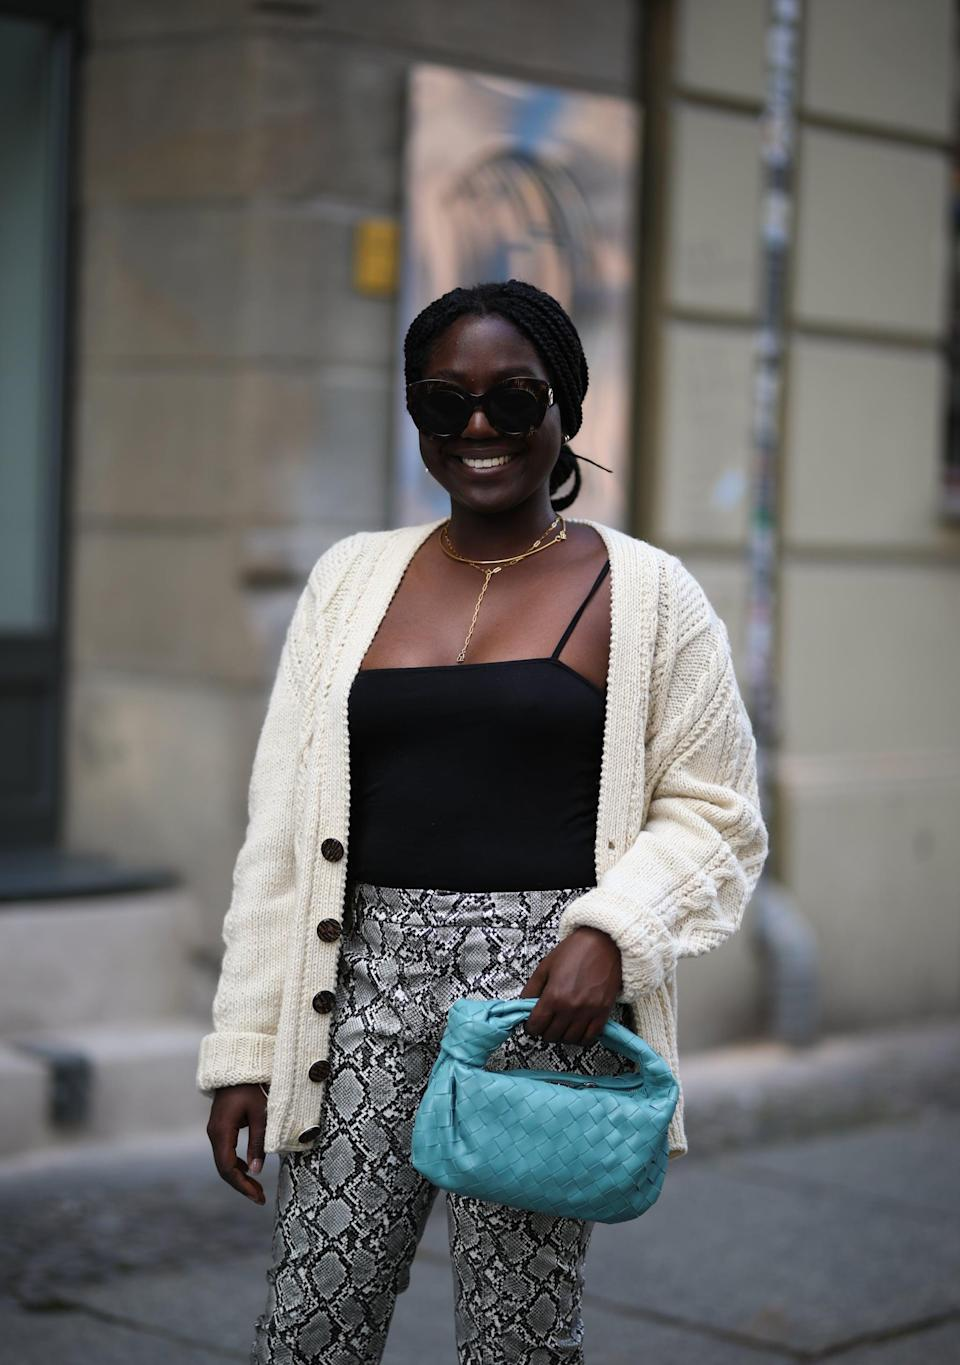 <p>This wardrobe mainstay has reigned for years, but in the near future, I'm going for more refined layering options.</p>